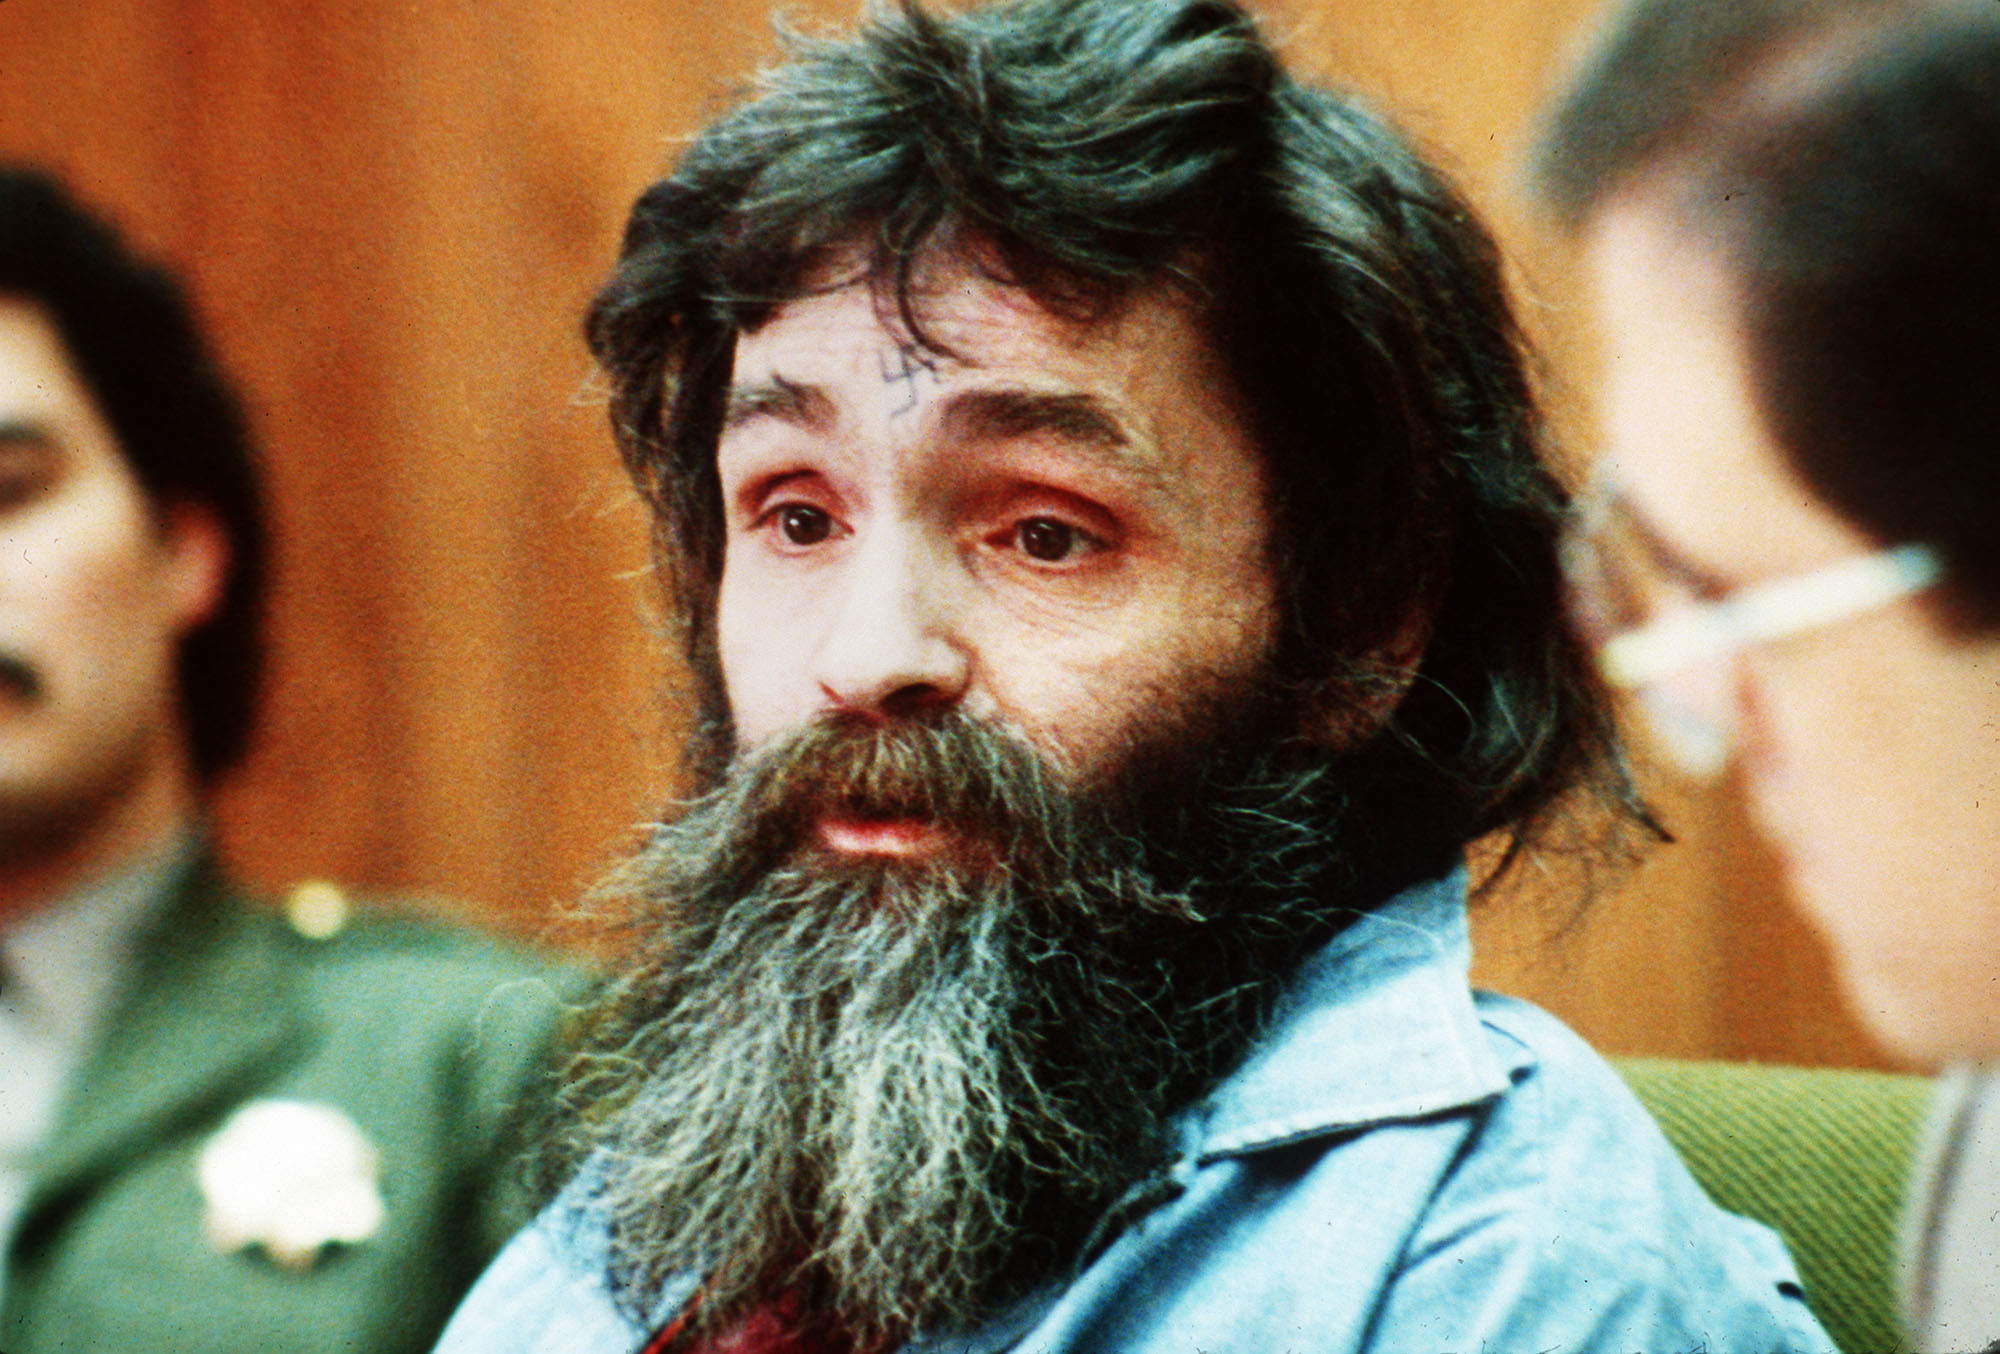 life and the influence of charles m mason to his followers At 75, charles manson has spent more than half his life in prison for masterminding the notorious helter skelter killing spree that left actress sharon tate and six others dead in los.